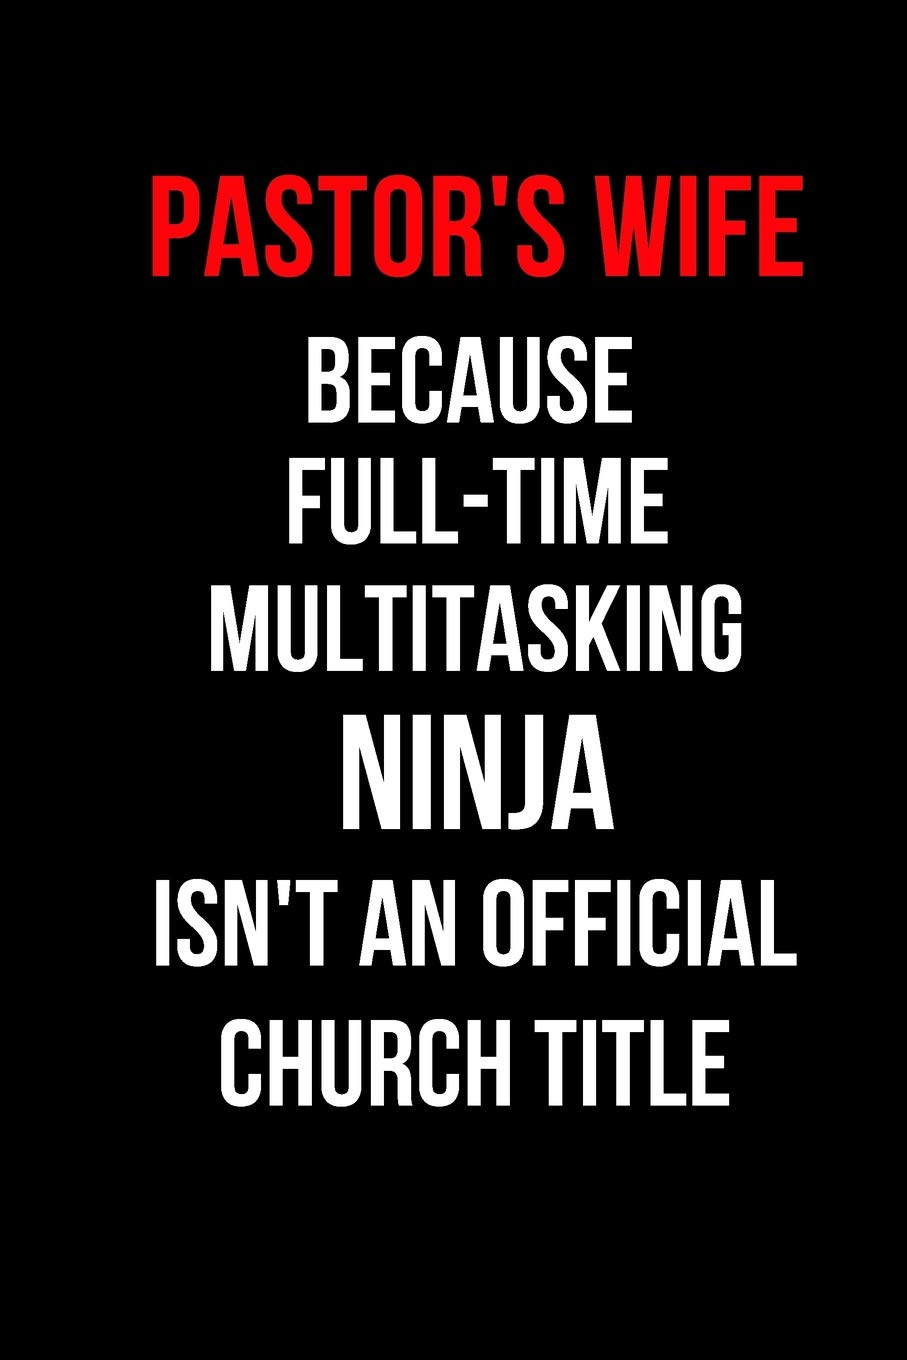 Pastors Wife Because Full-Time MultiTasking Ninja Isnt an ...